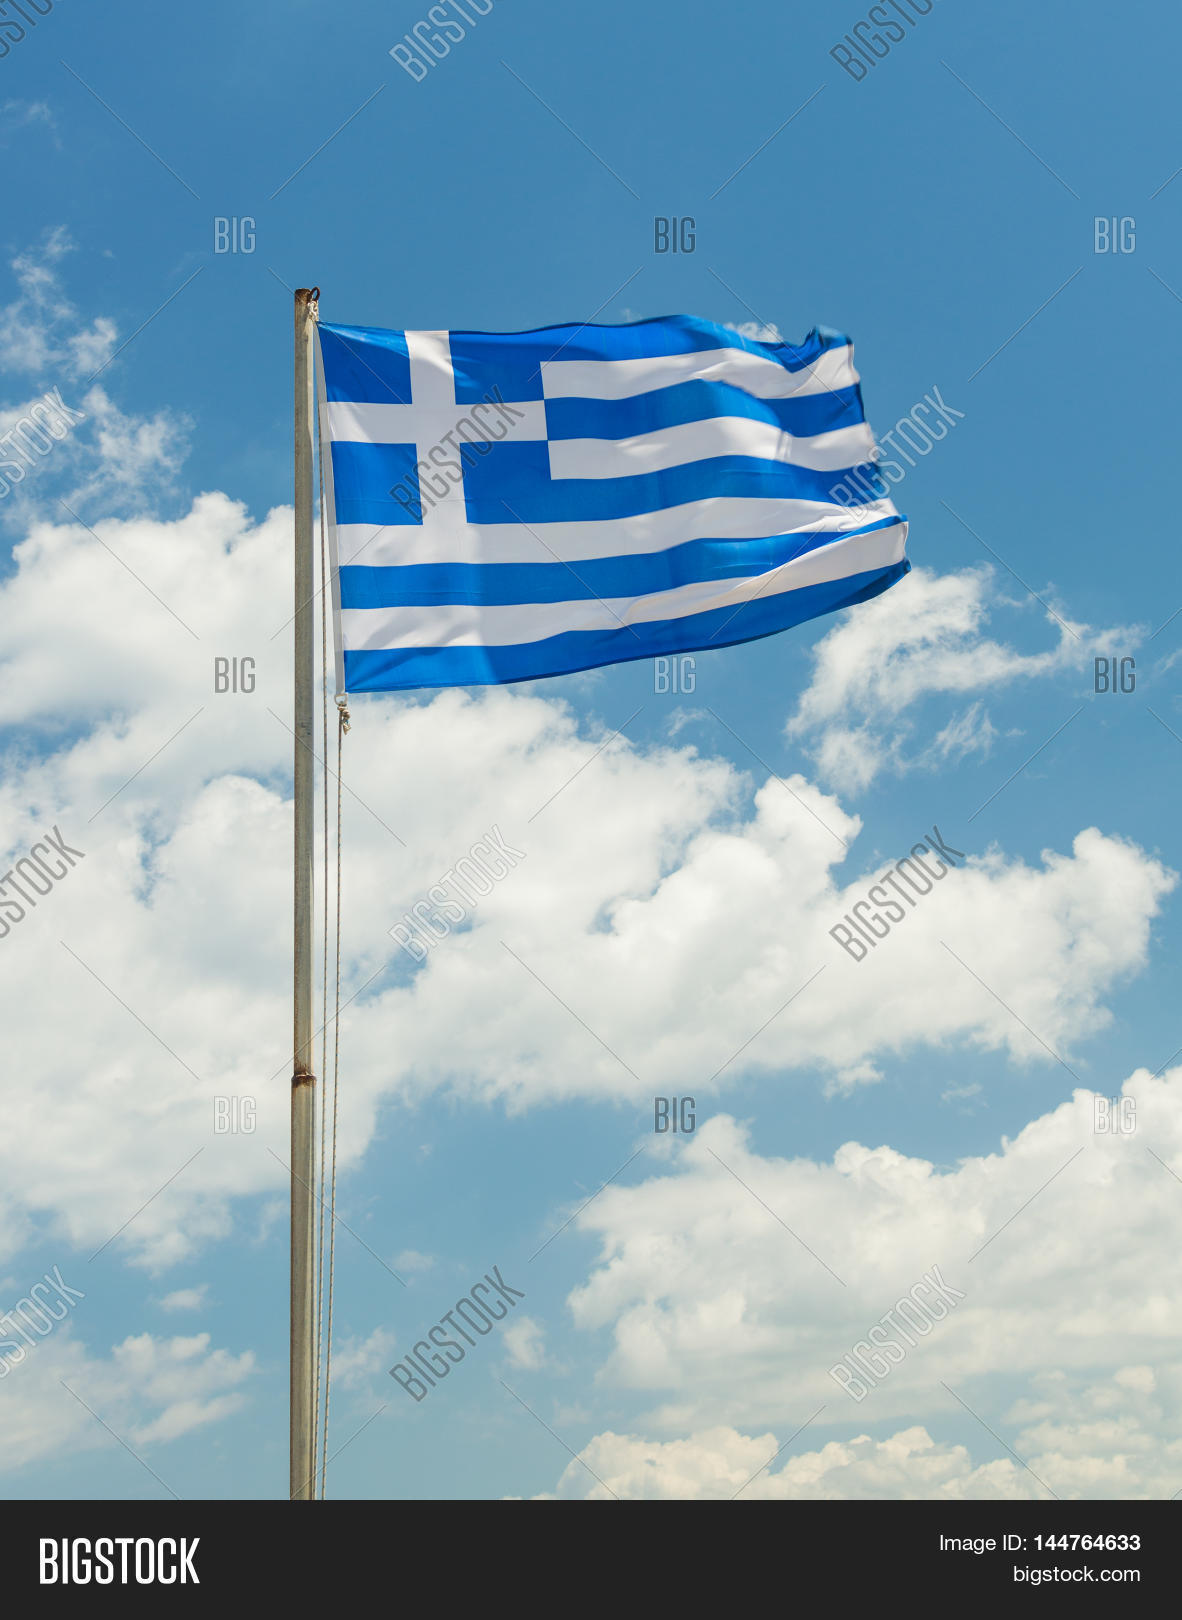 National flag of Greece in the wind. Blue sky with white clouds on background.